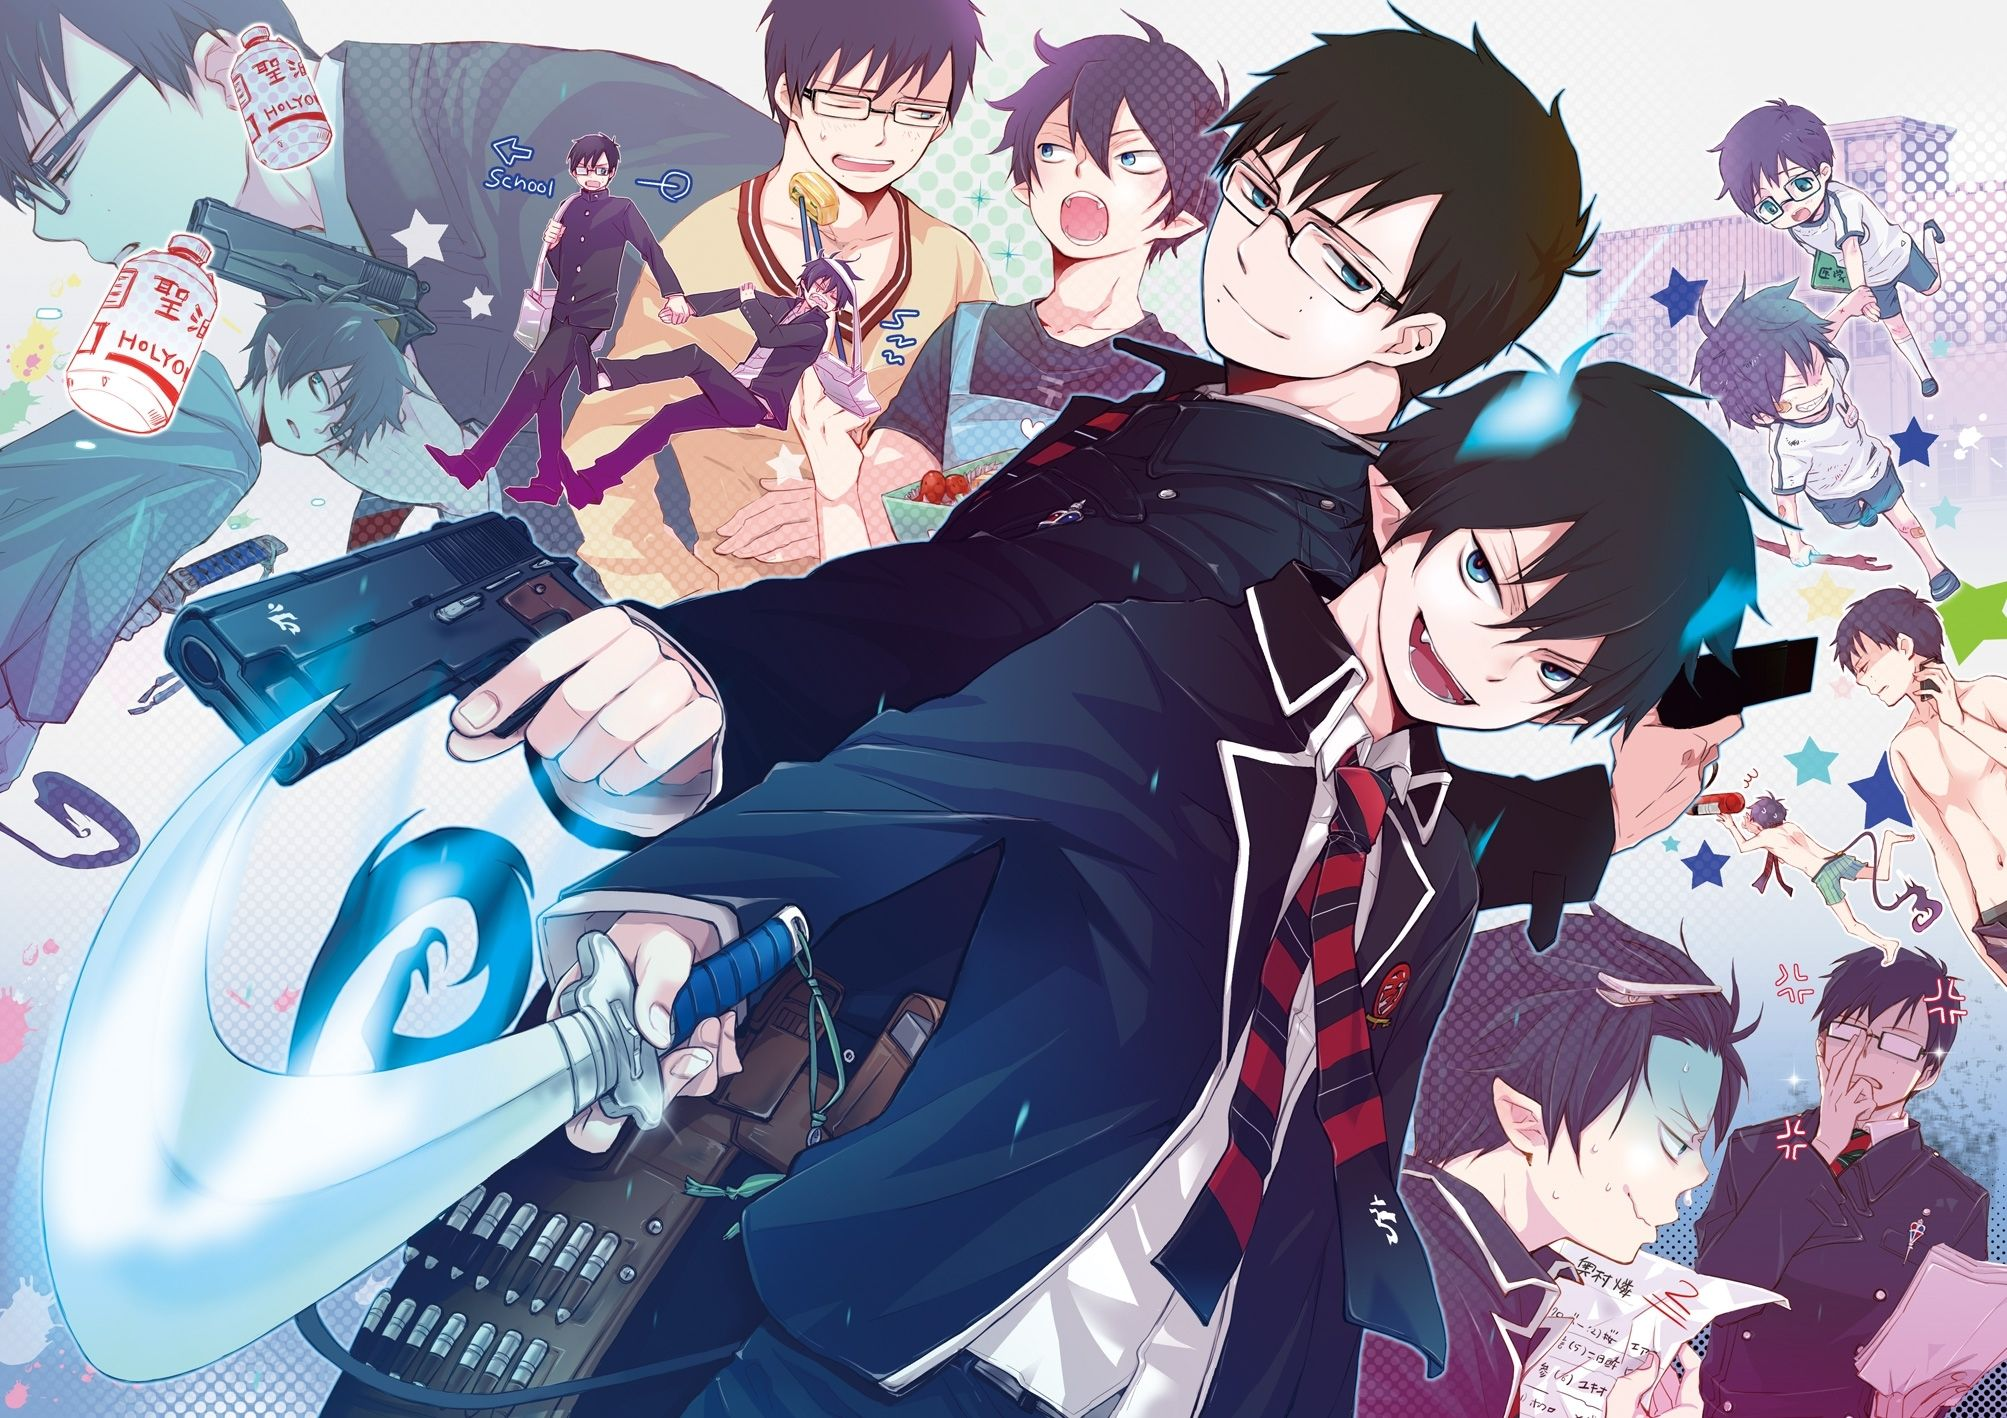 Check Out Our 270 Blue Exorcist Wallpapers And Backgrounds And Download Them On All Your Devices Computer Smartp Blue Exorcist Anime Blue Exorcist Blue Anime Download wallpaper anime ao no